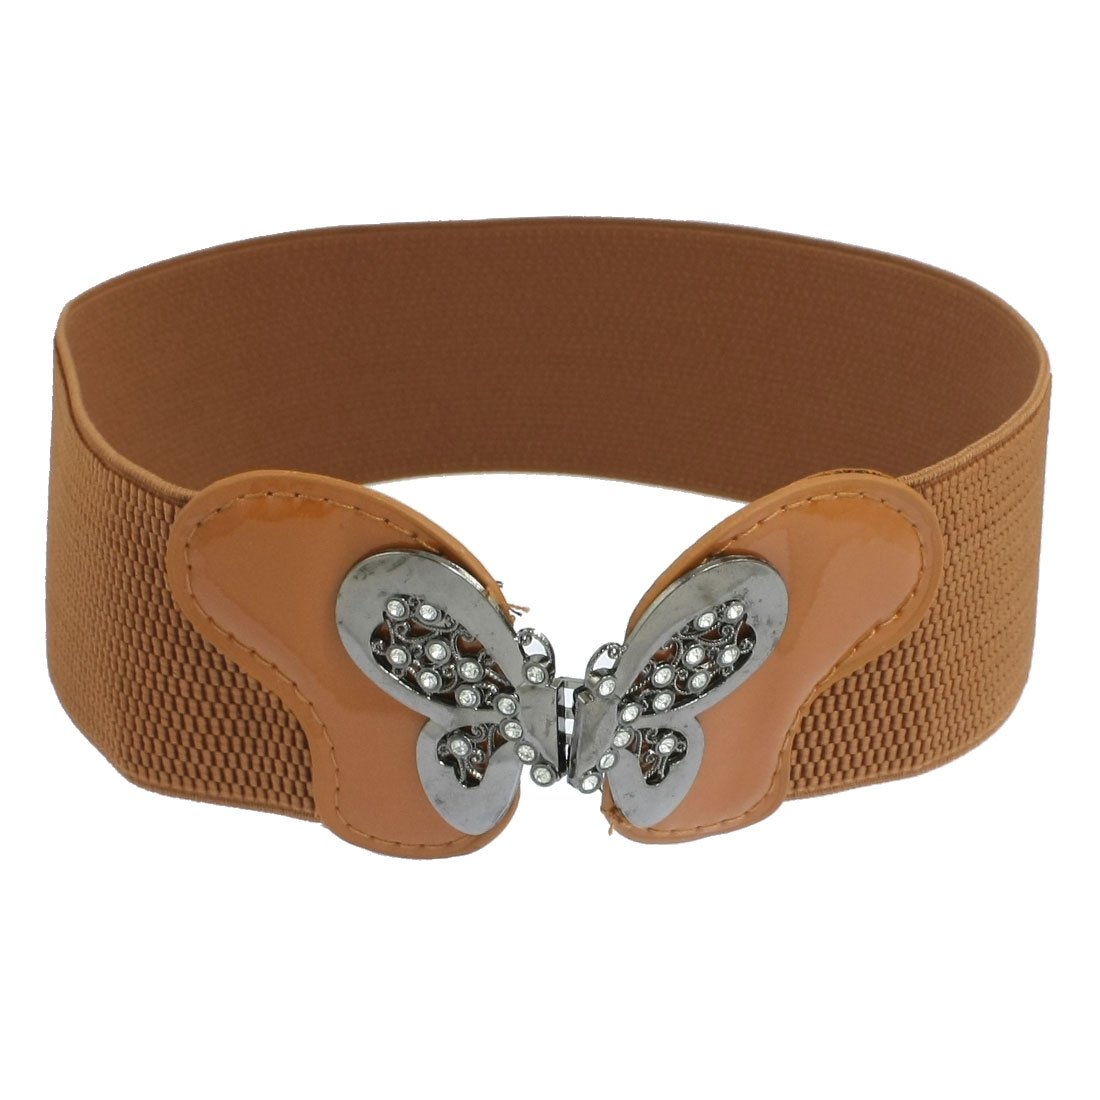 Women Interlocking Buckle Brown Textured Stretch Waist Belt Cinch Waistband